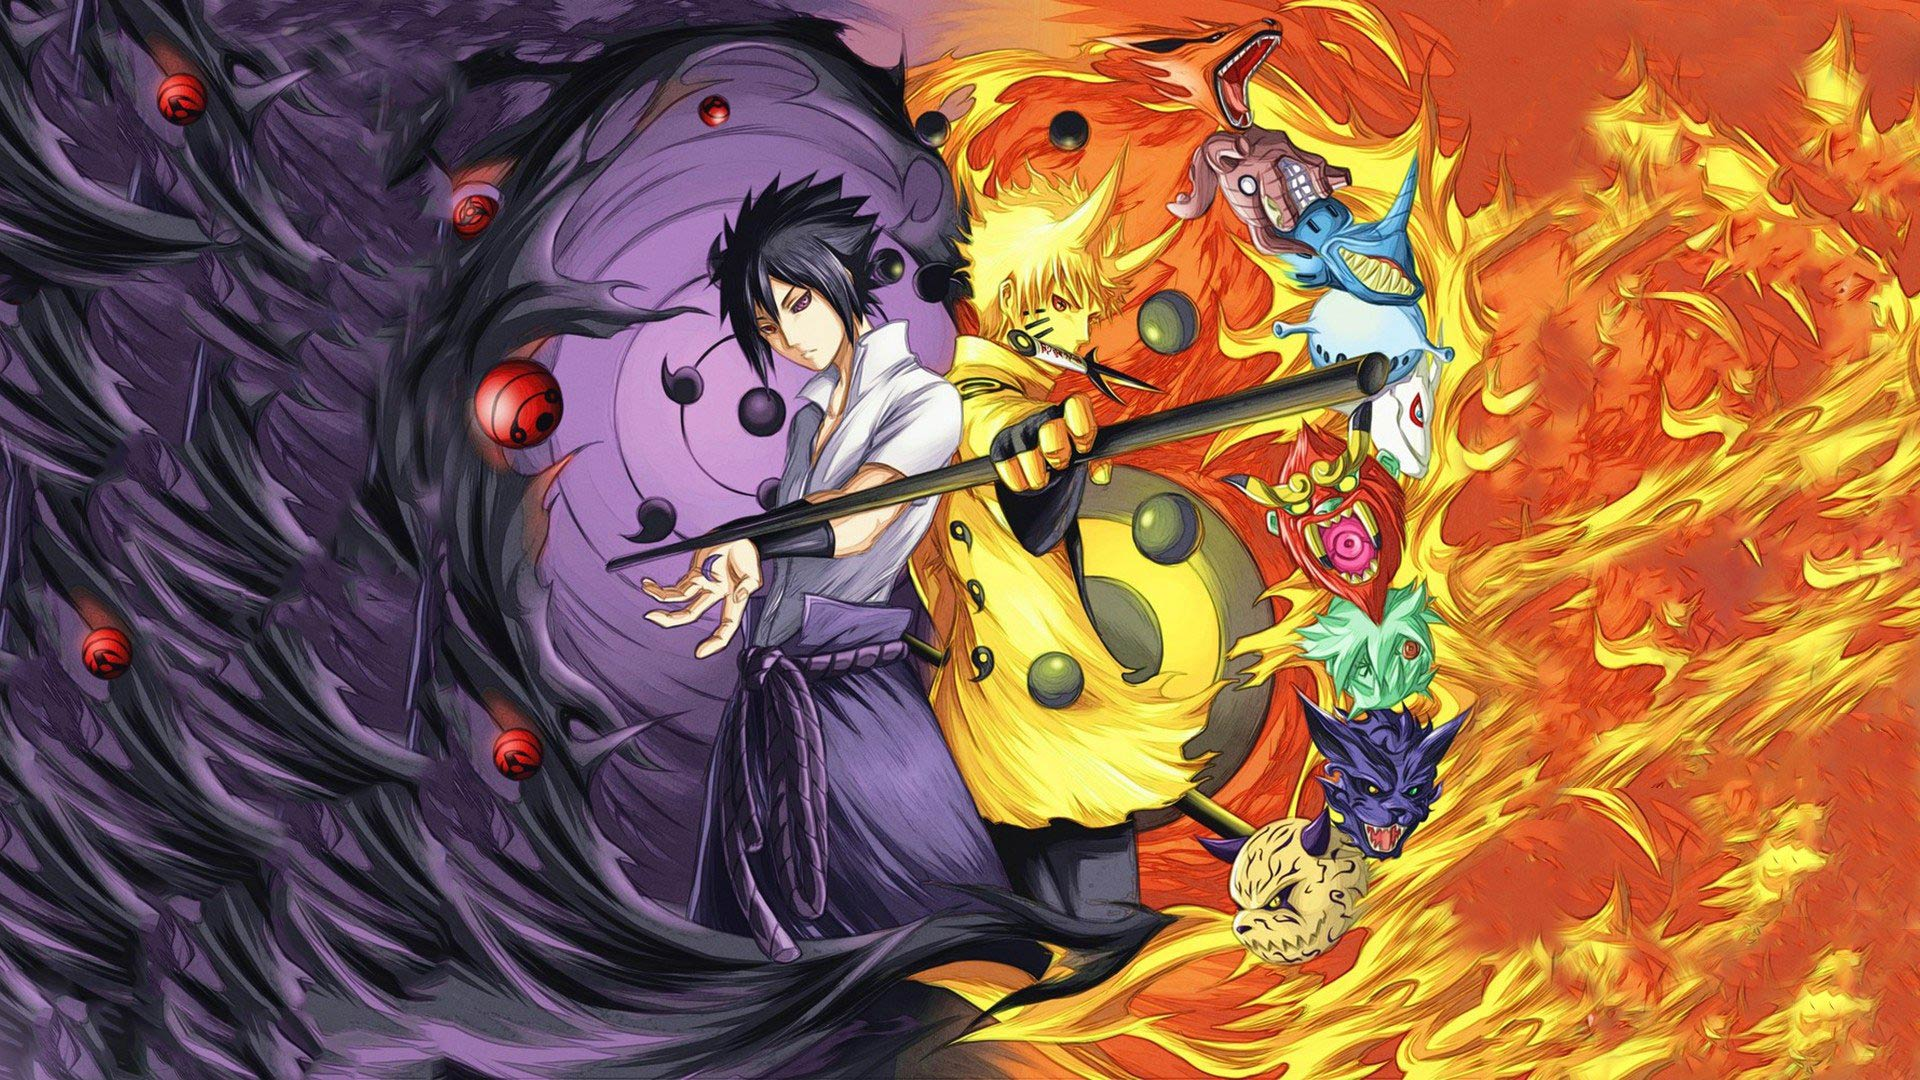 naruto wallpaper wallpapers images bigest